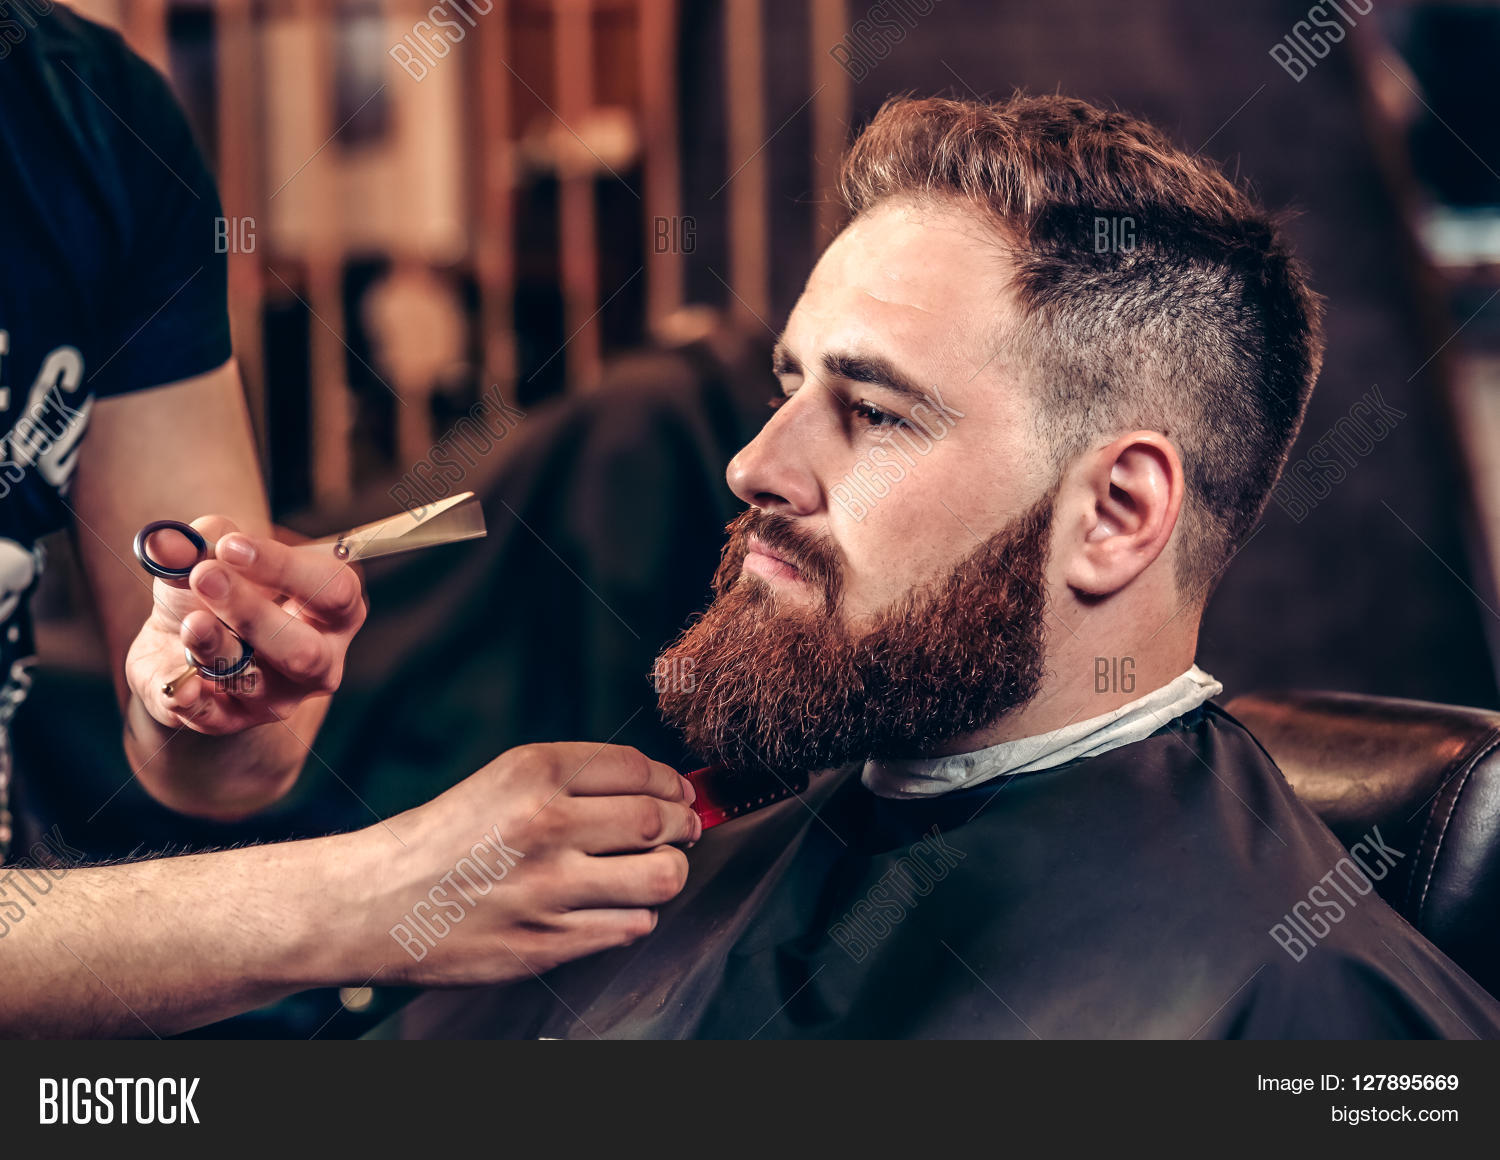 closeup professional grooming beard with scissors in a barbershop portrait of a bearded man. Black Bedroom Furniture Sets. Home Design Ideas